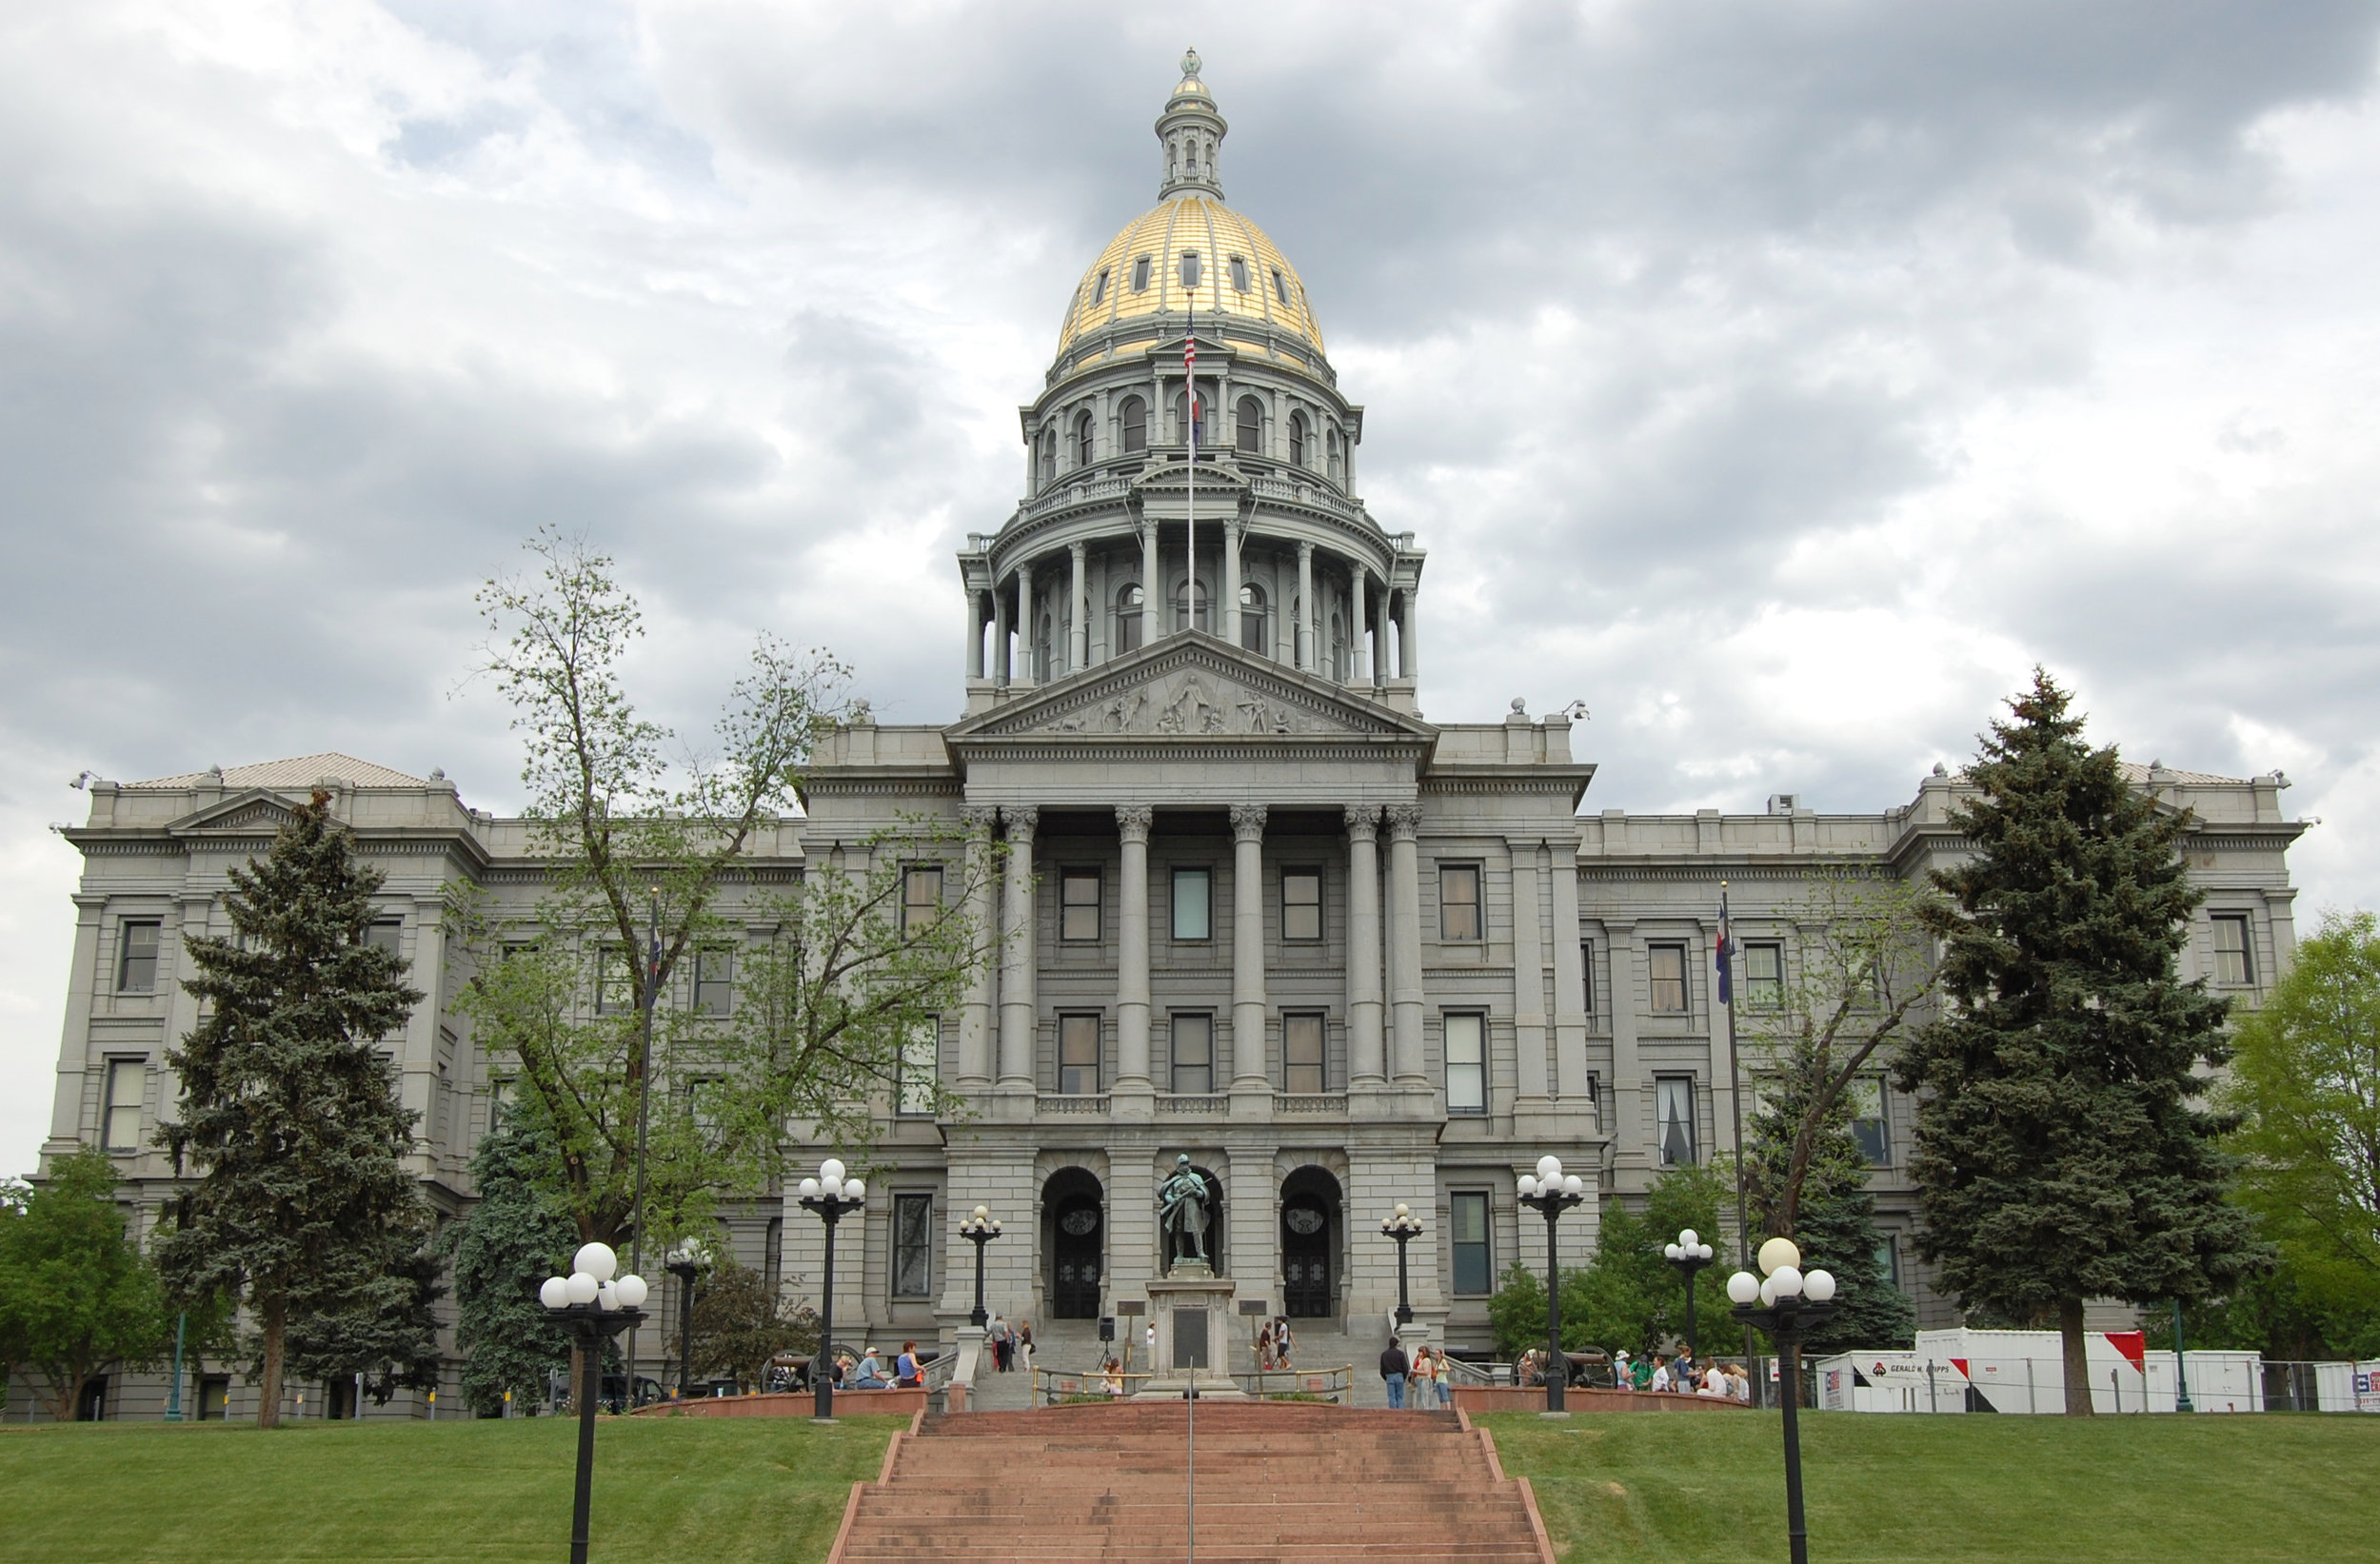 Legislators in Denver are deliberating whether to update educational standards of public schools in Colorado to include the contributions and history of Asian Americans.